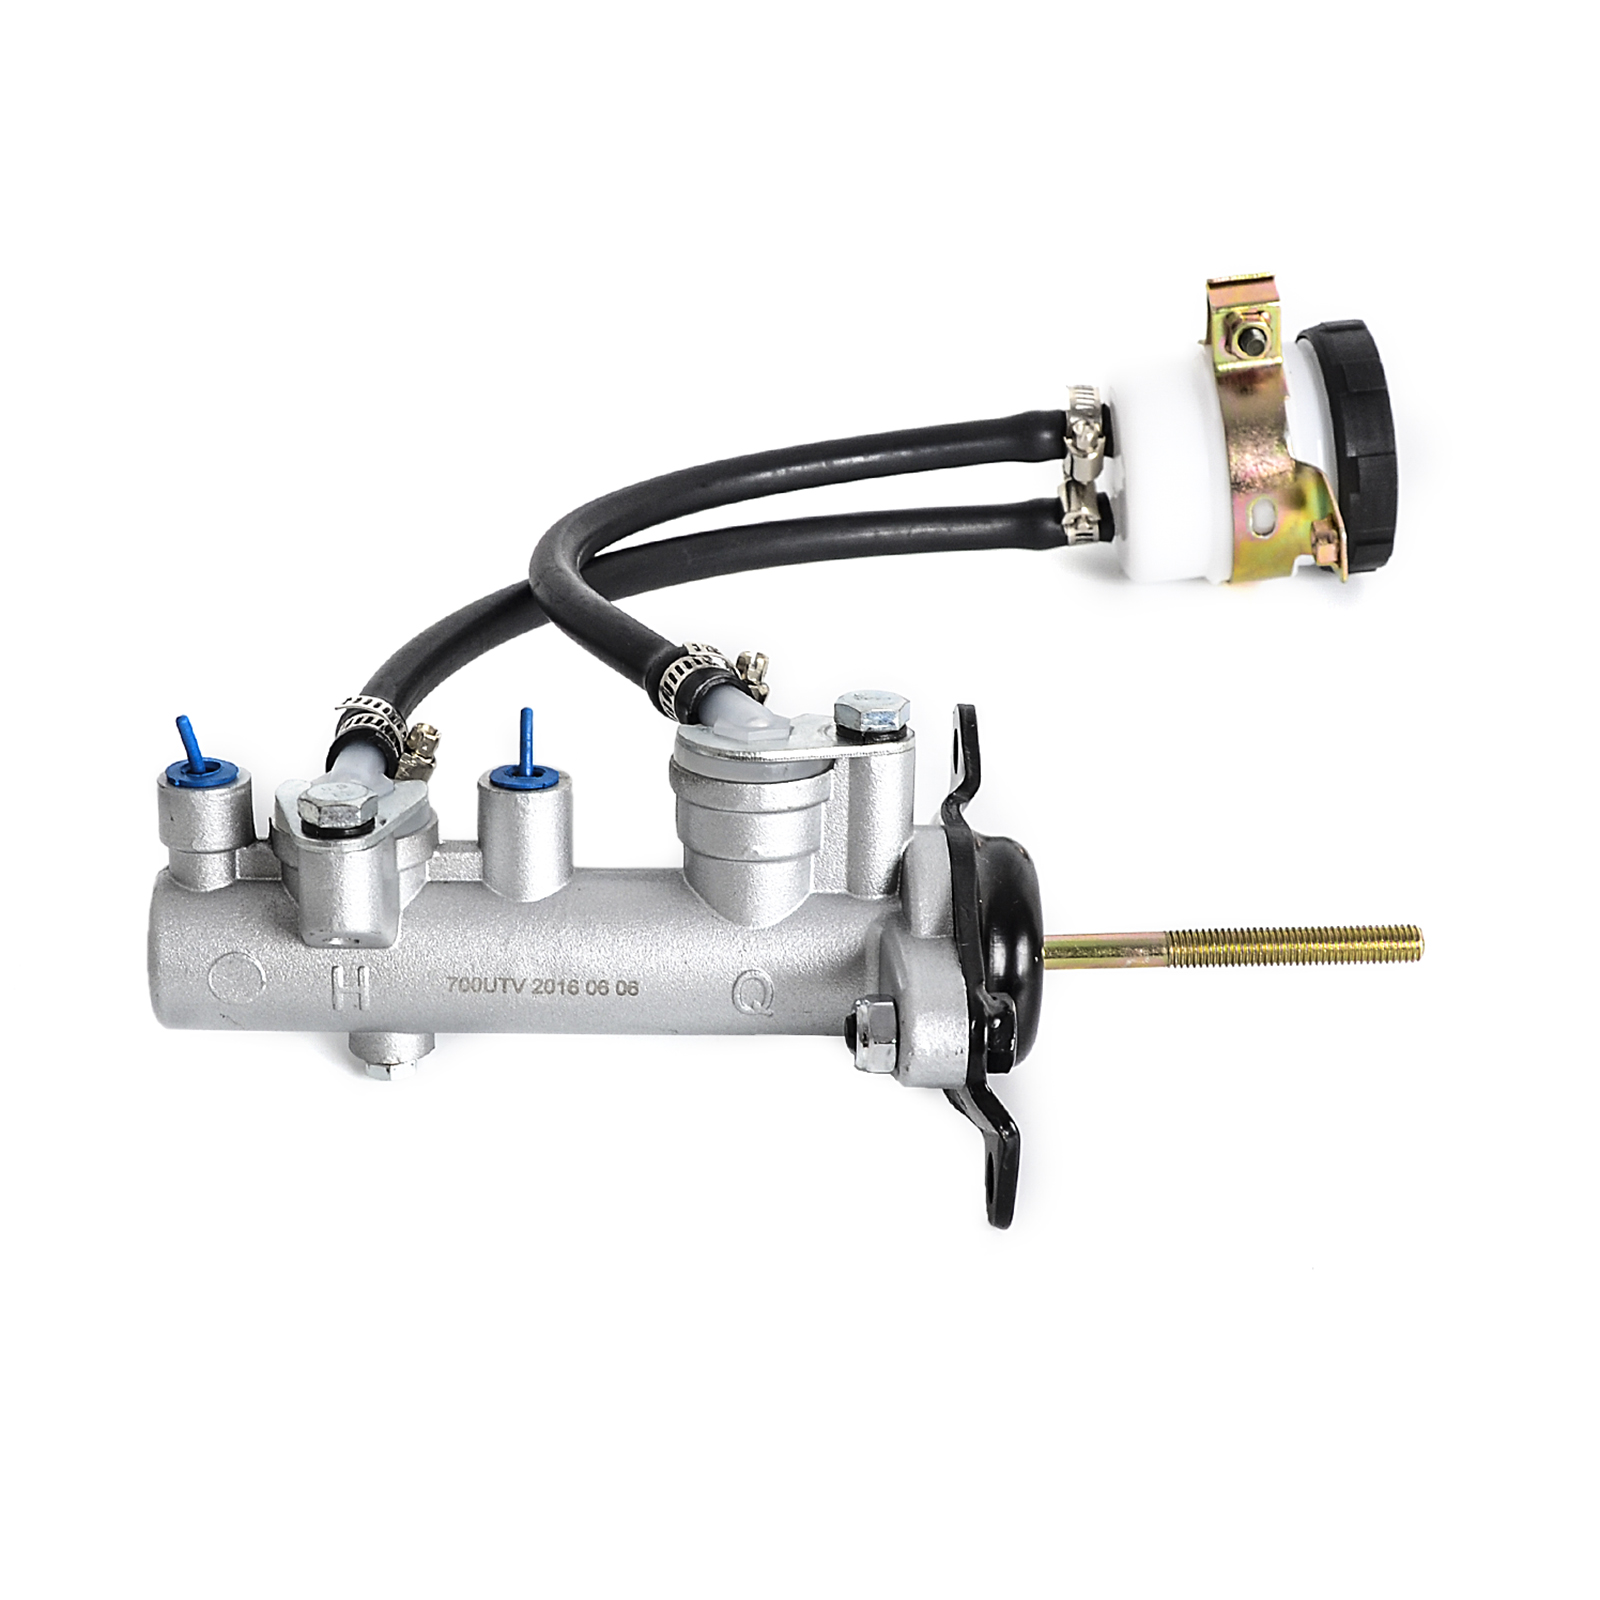 Master Cylinder Brake Pump For HiSUN 400 500 700 & <font><b>800</b></font> <font><b>UTV</b></font> Big Muddy MASSIMO Bennche image